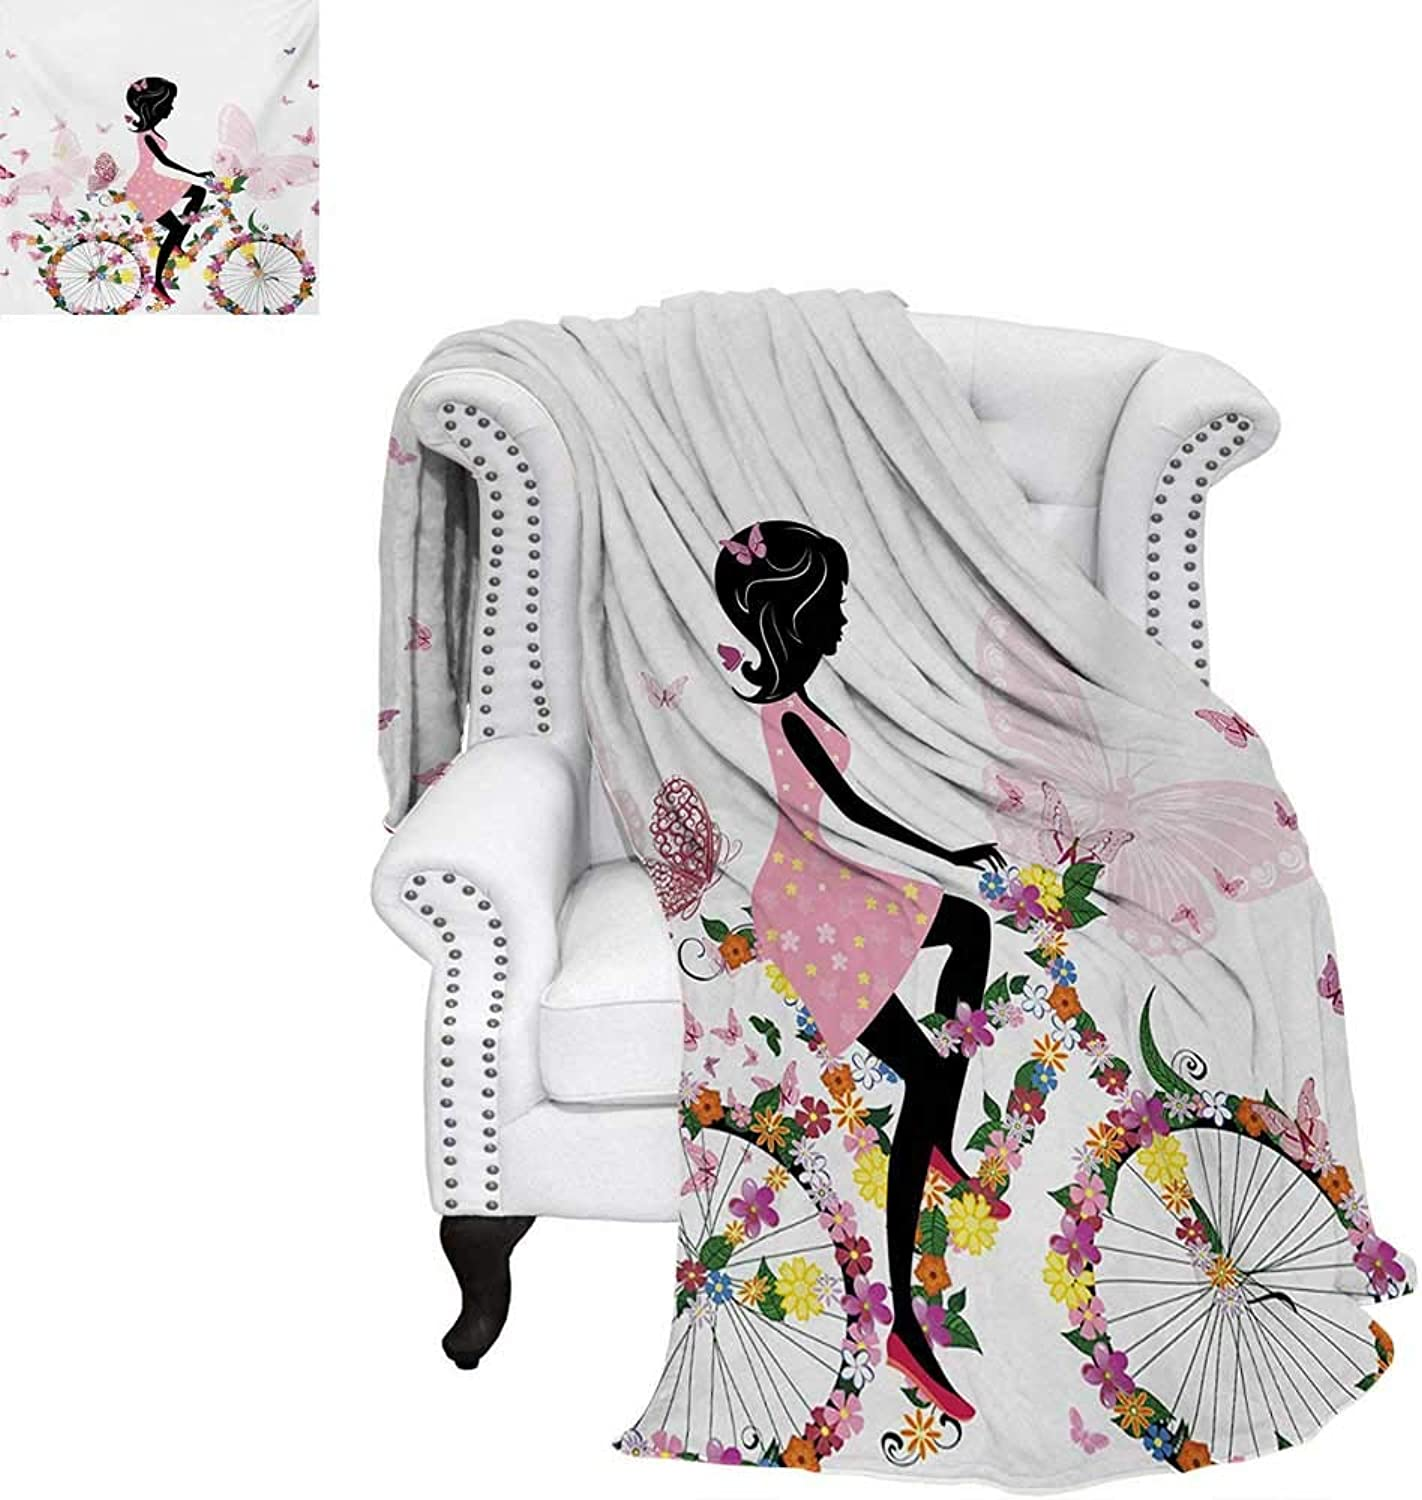 Warmfamily Bicycle Digital Printing Blanket Girl in a Pink Dress Riding a Bike with colorful Flowers and Romantic Butterflies Lightweight Blanket 60 x50  Multicolor